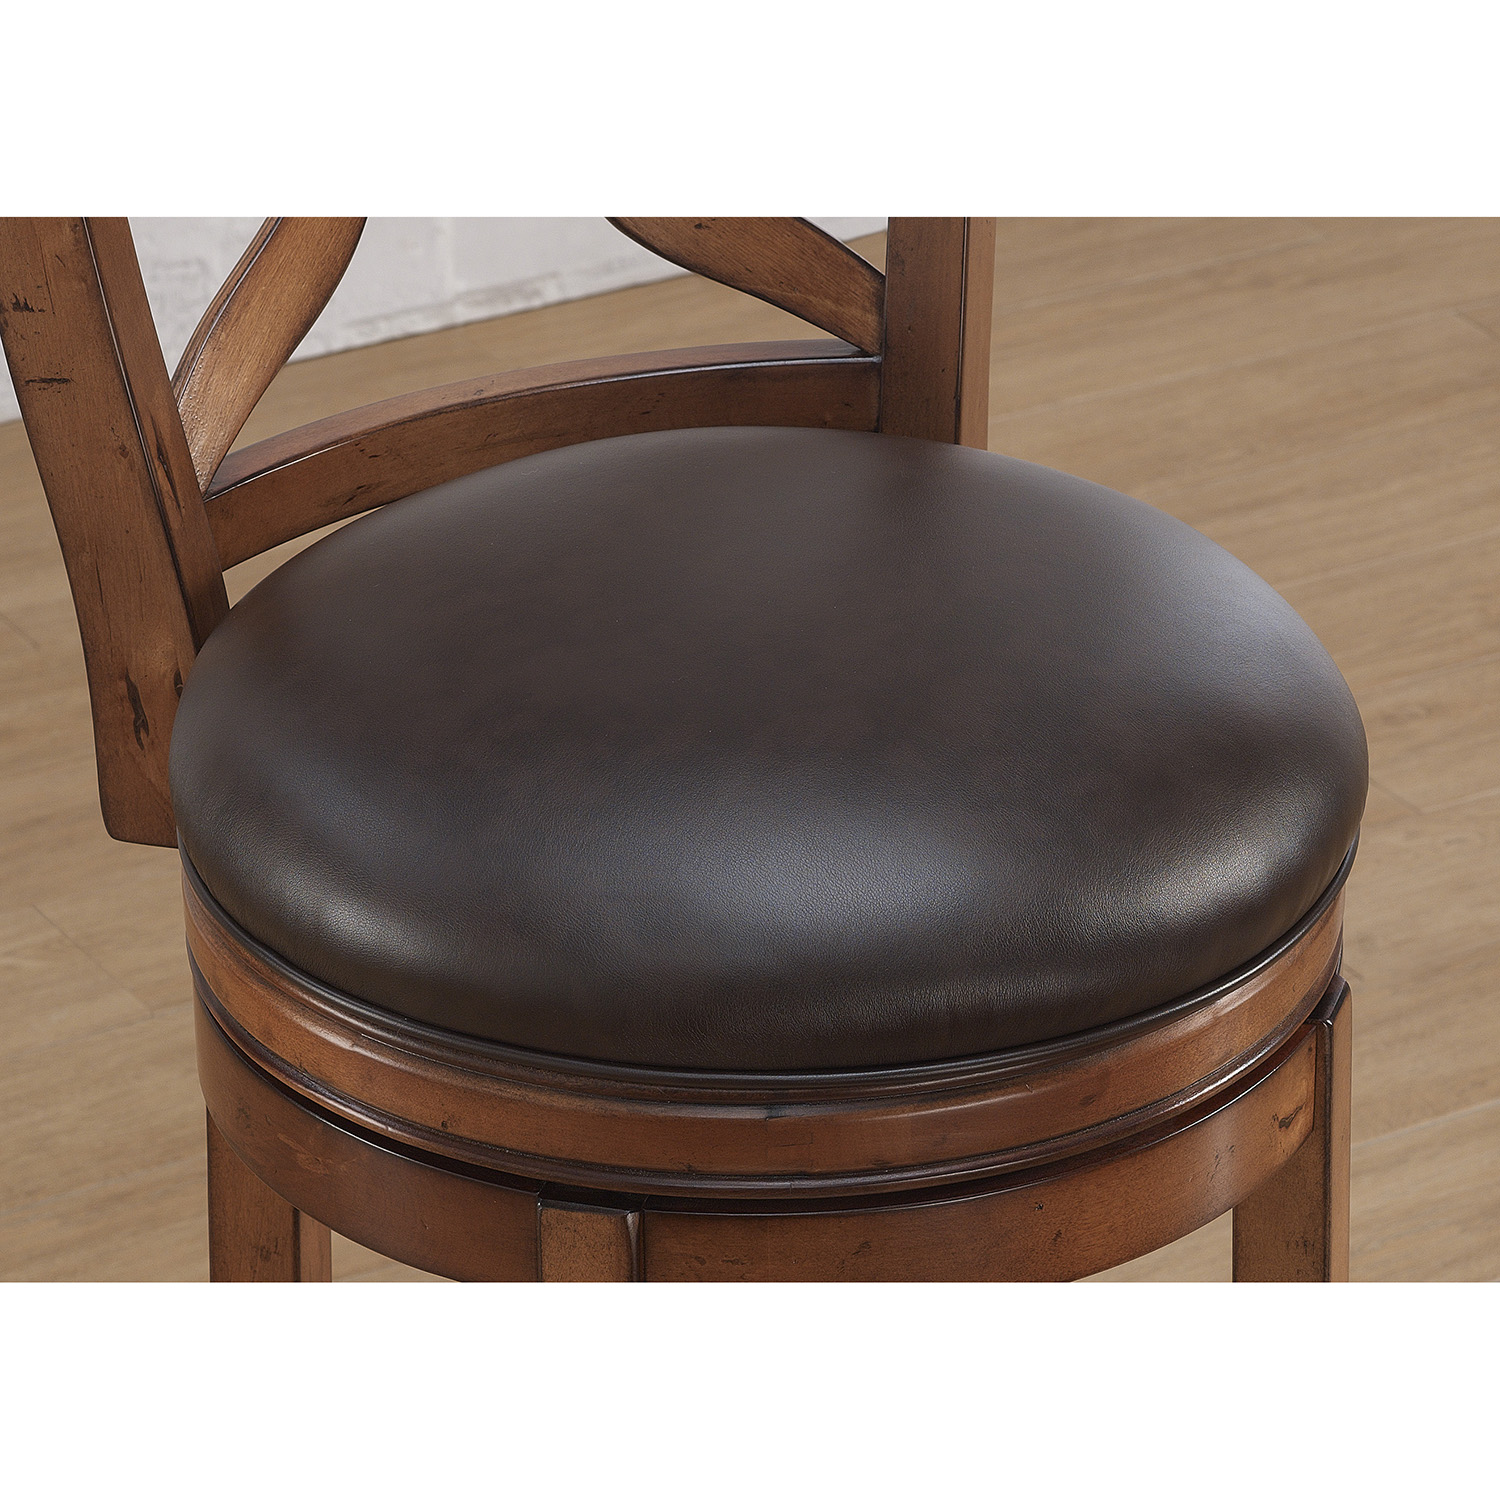 Provence Swivel Counter Stool - Light Oak, Bourbon Bonded Leather - AW-B2-201-26L